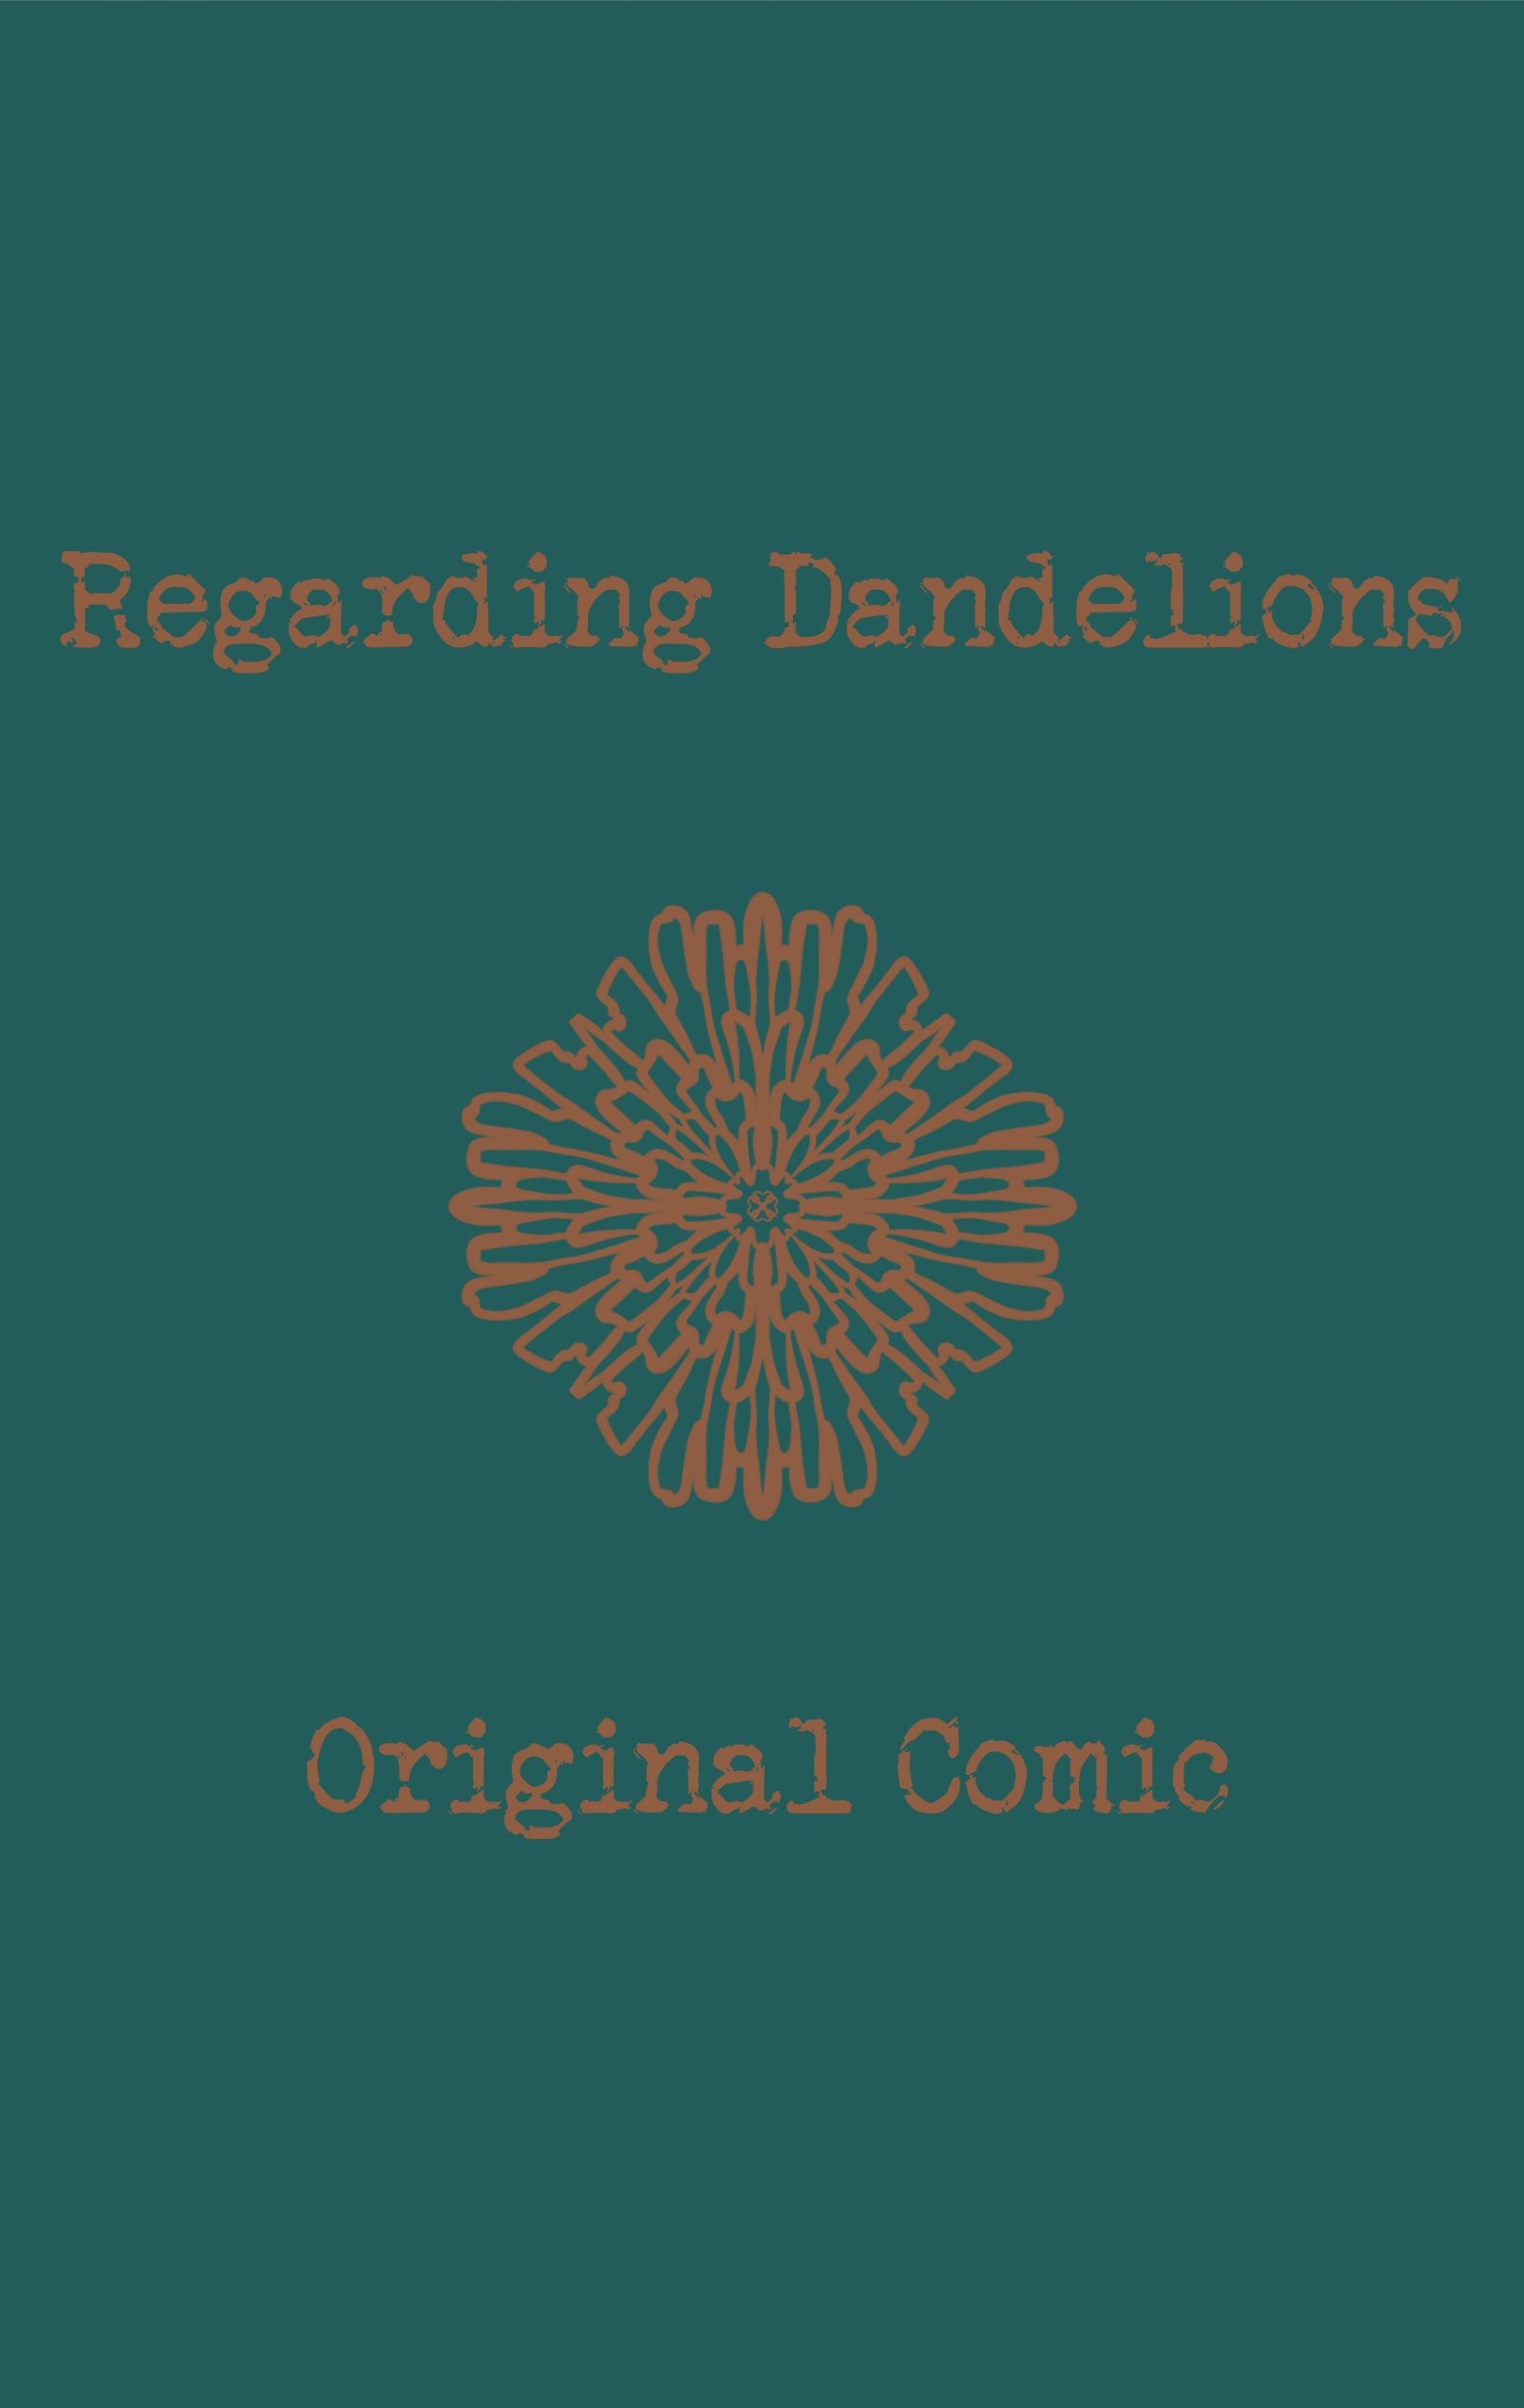 Regarding Dandelions - Original